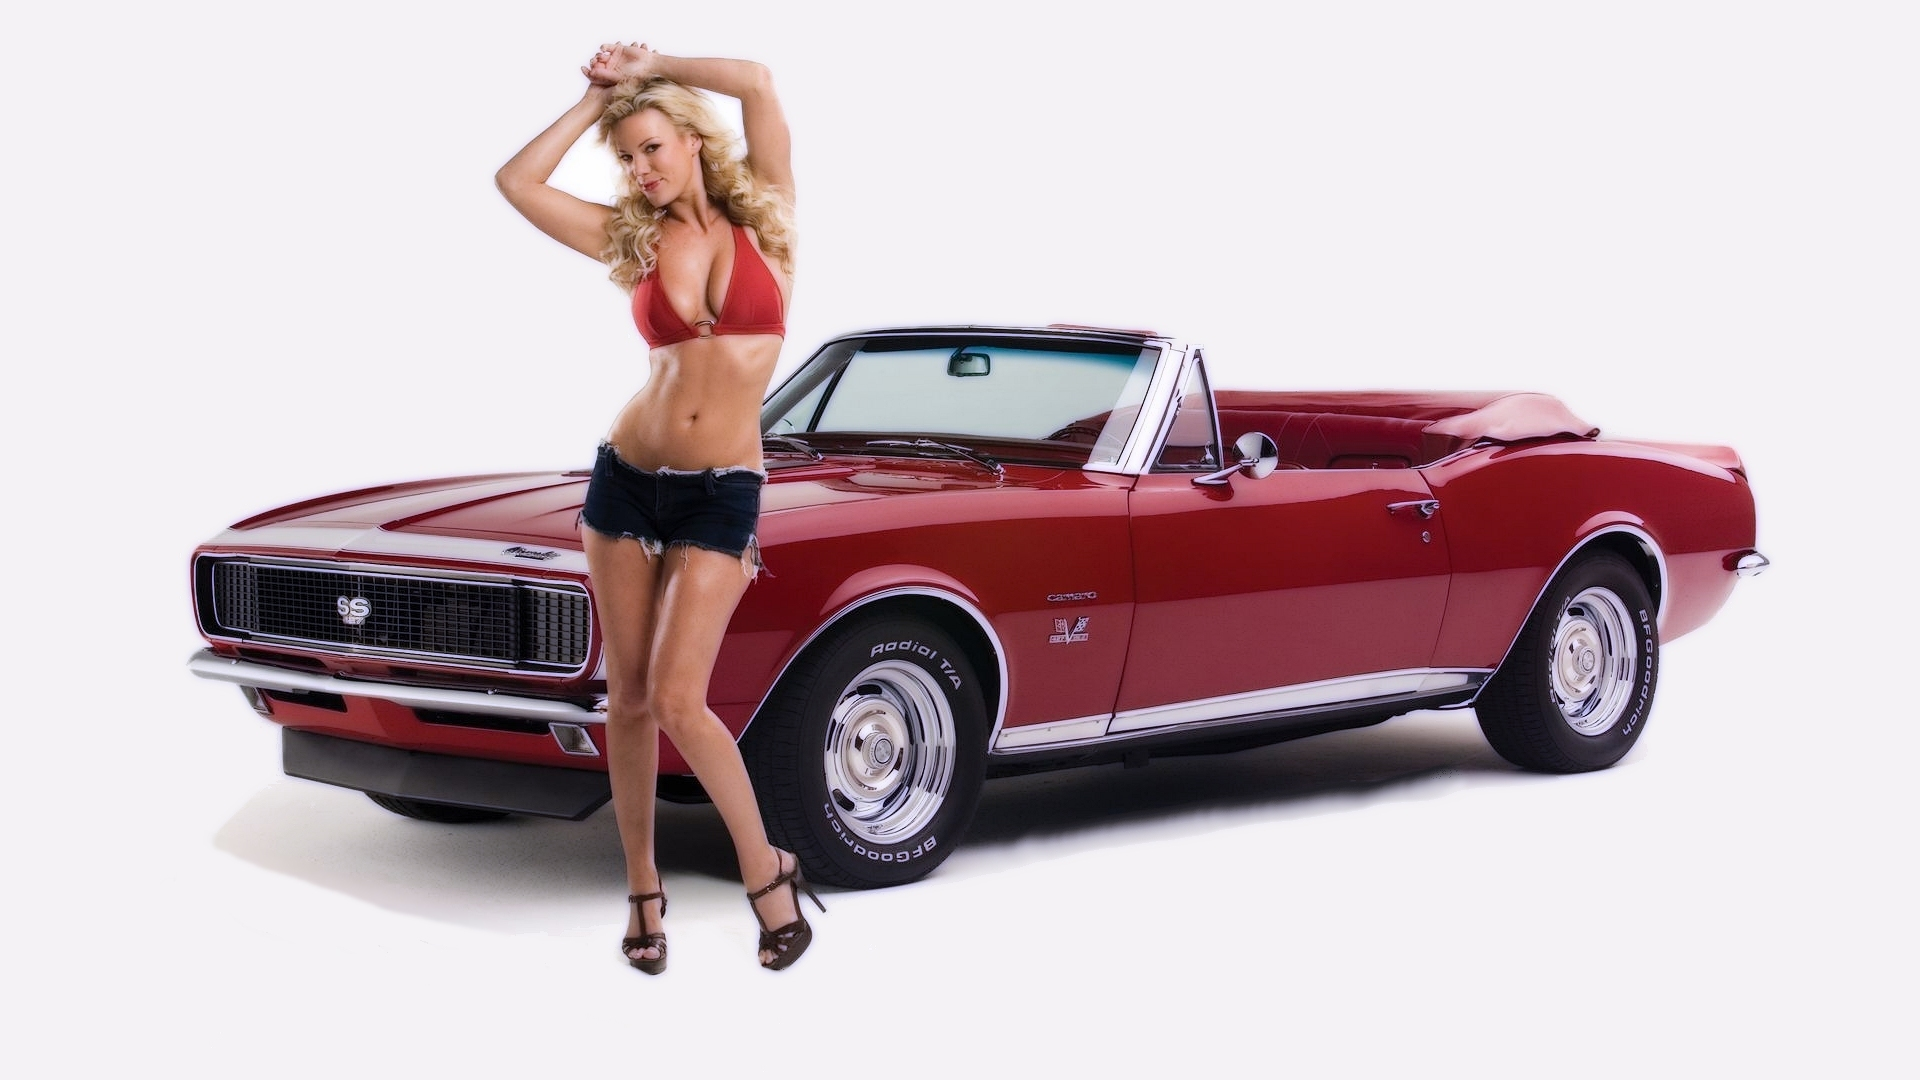 red cars convertible Shorts HD Wallpaper